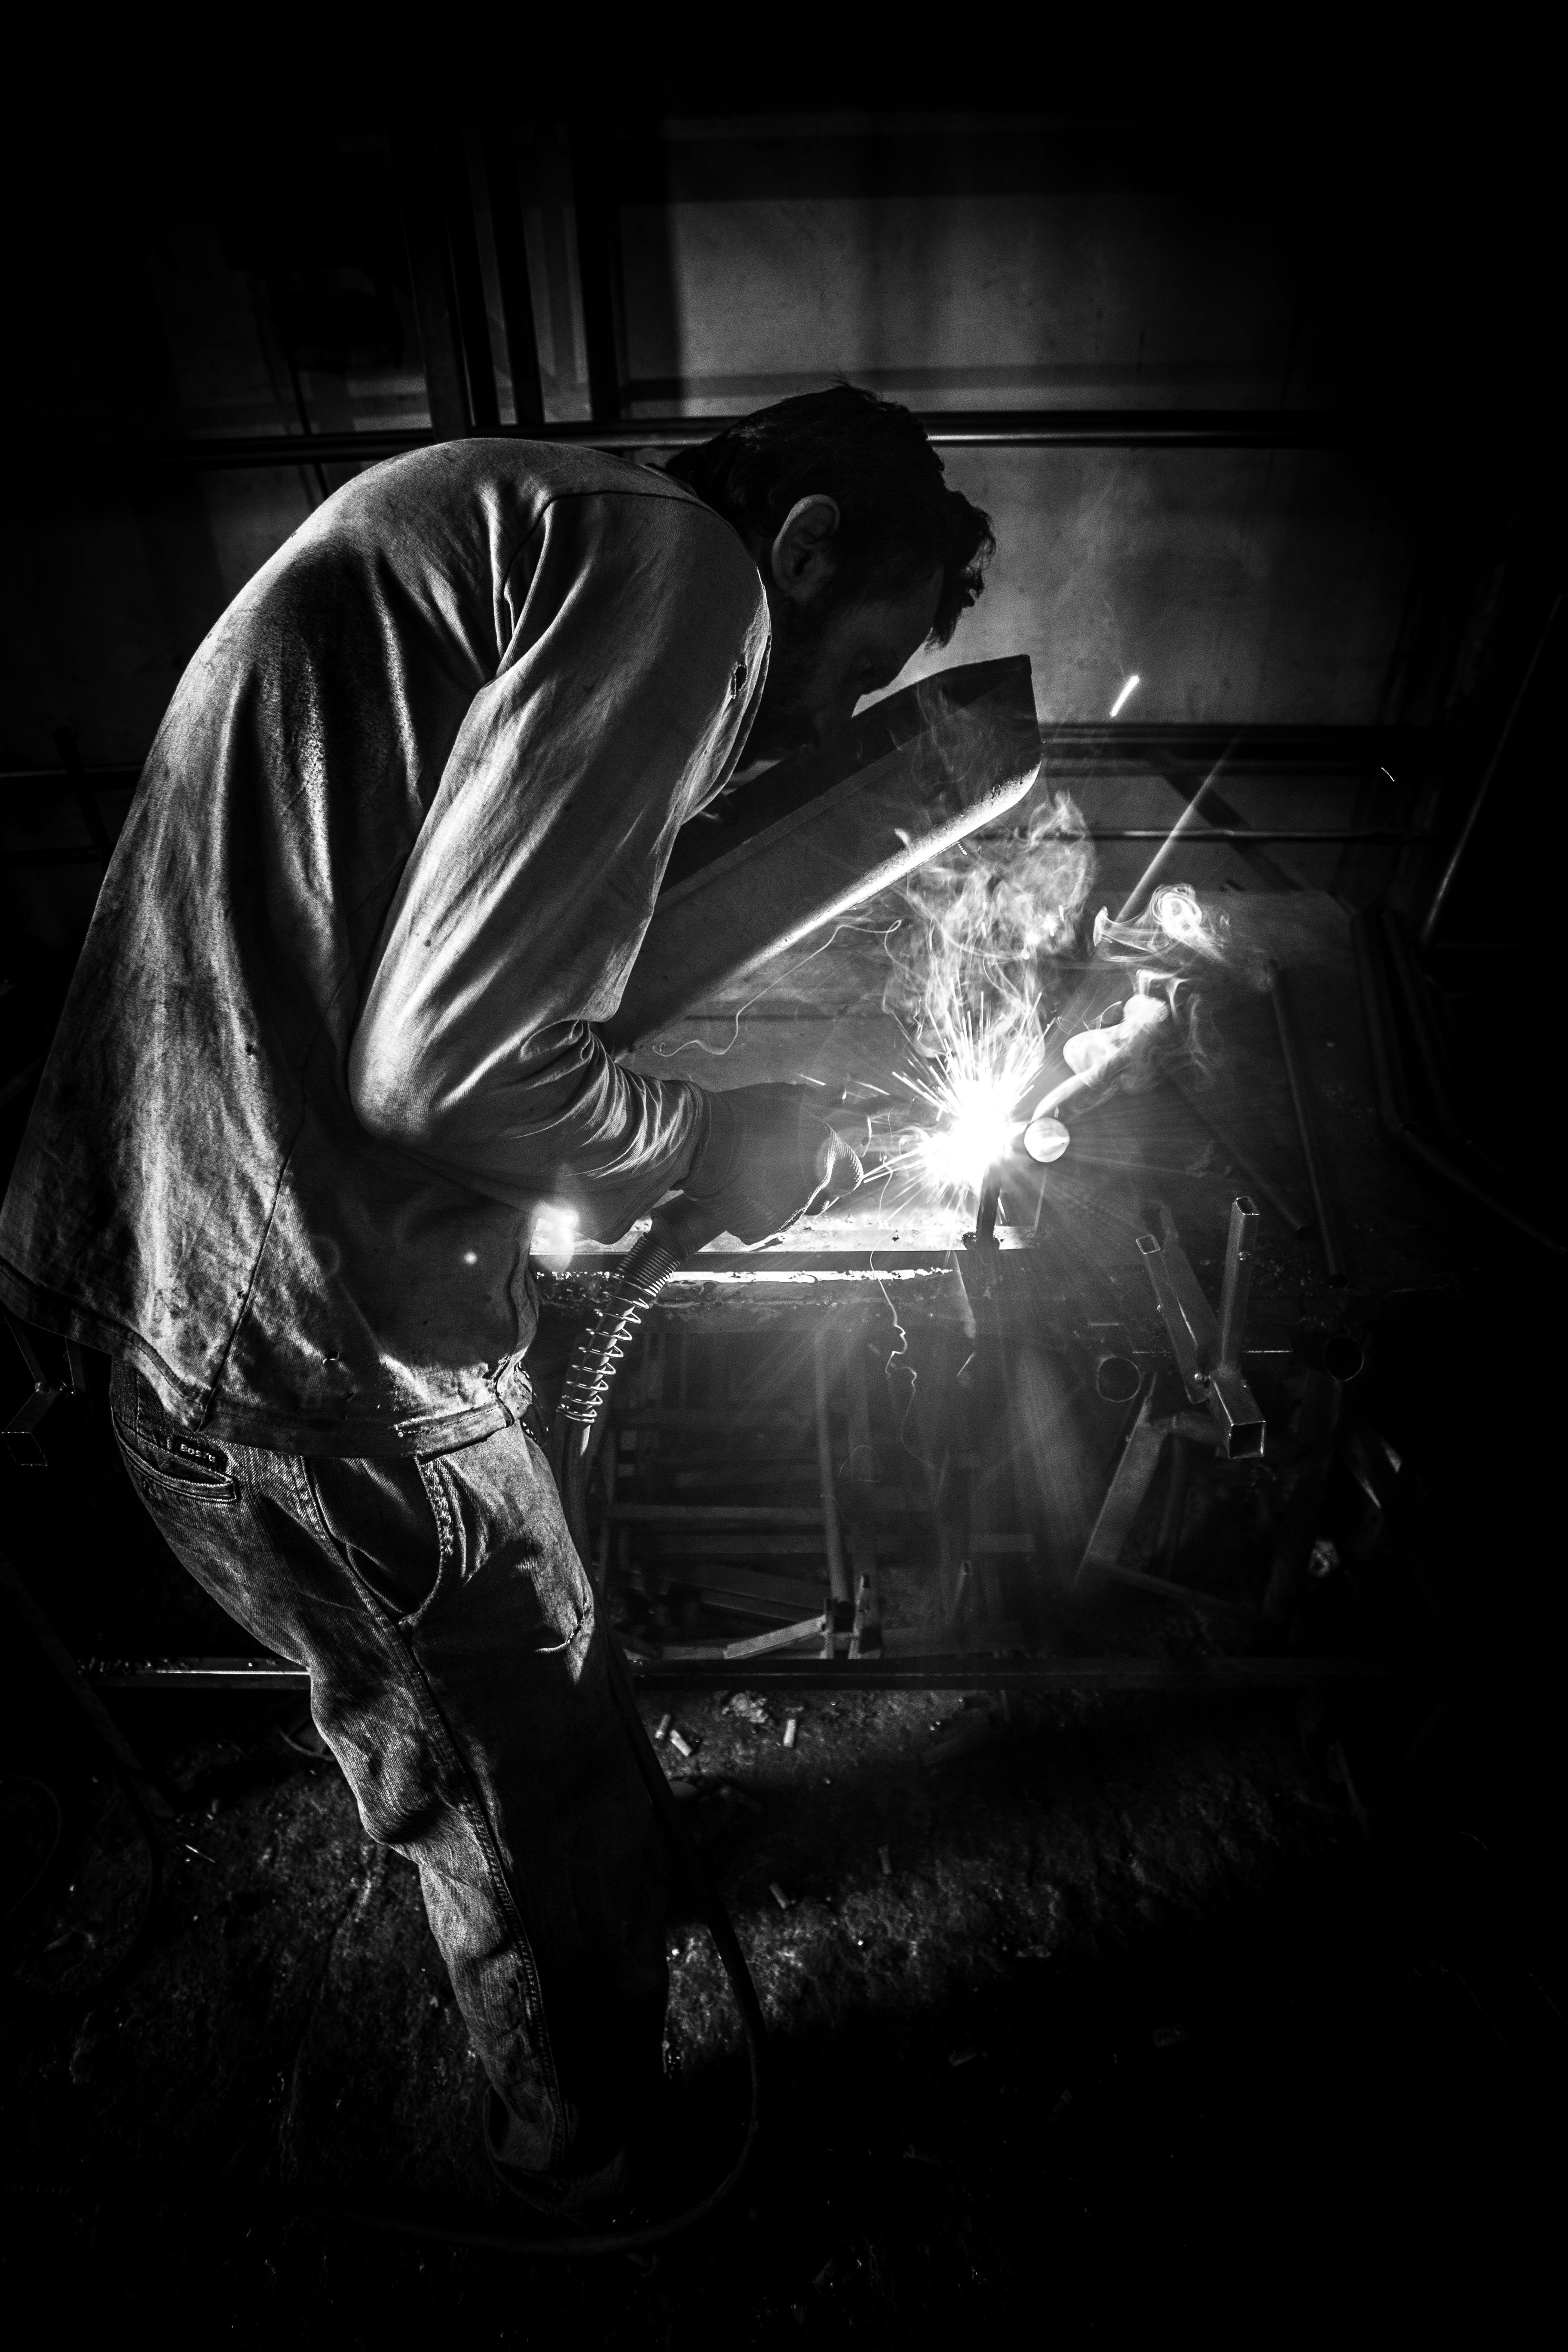 Industrial Welding Specifications: Does MIG or TIG Fit Your